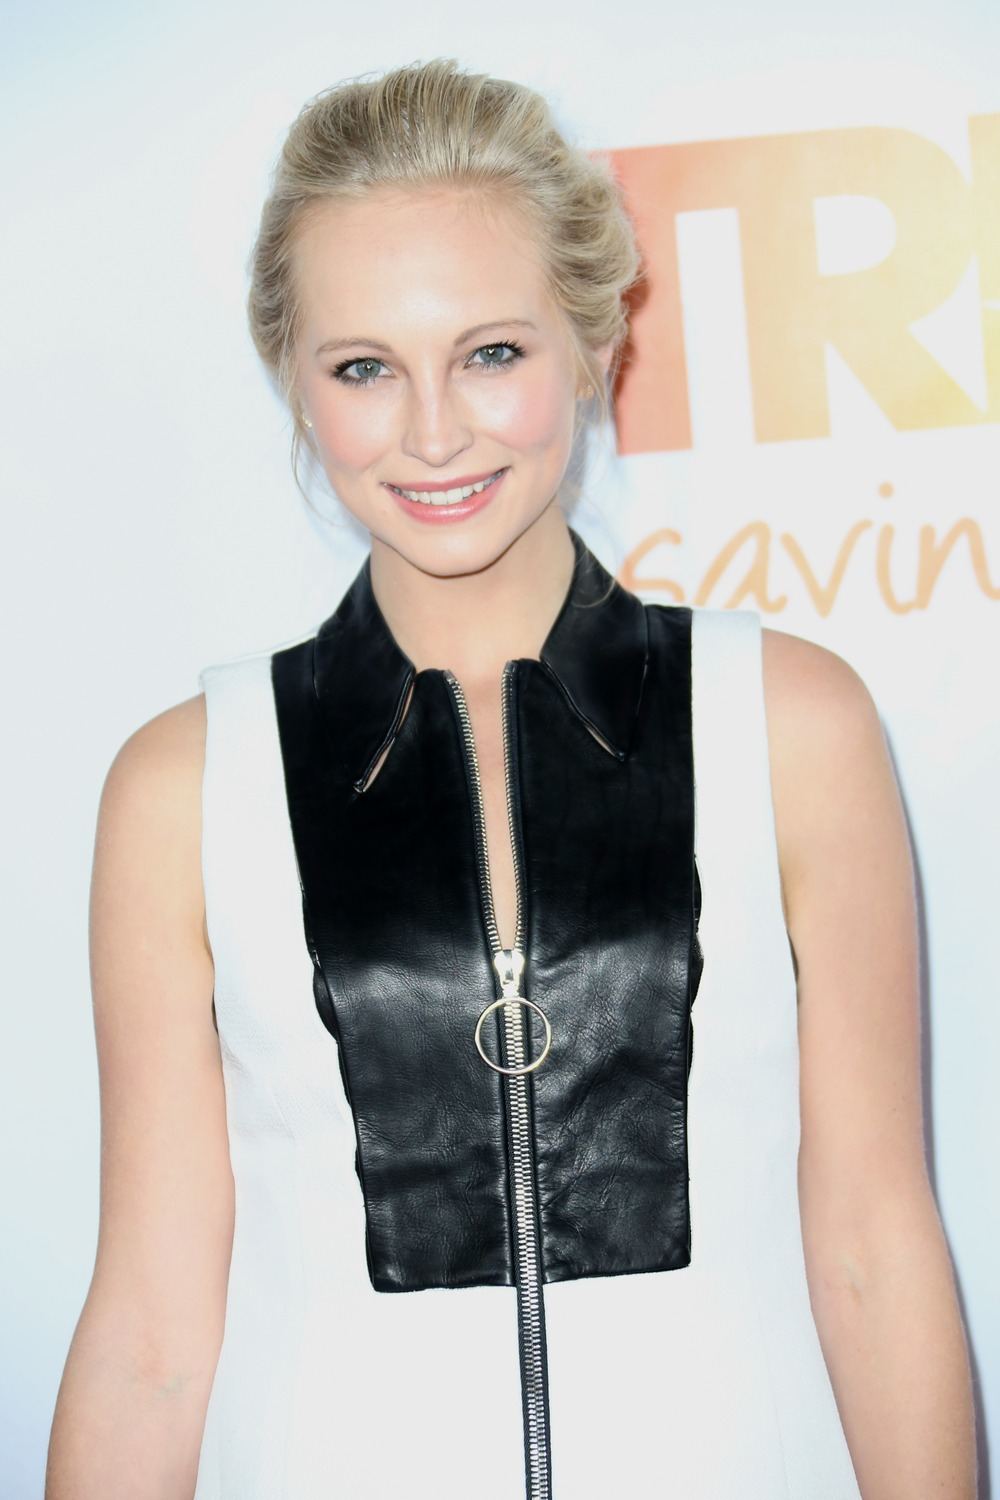 Vampire Diaries Star Candice Accola Is Adorable in Her Holiday Pajamas (PHOTO)